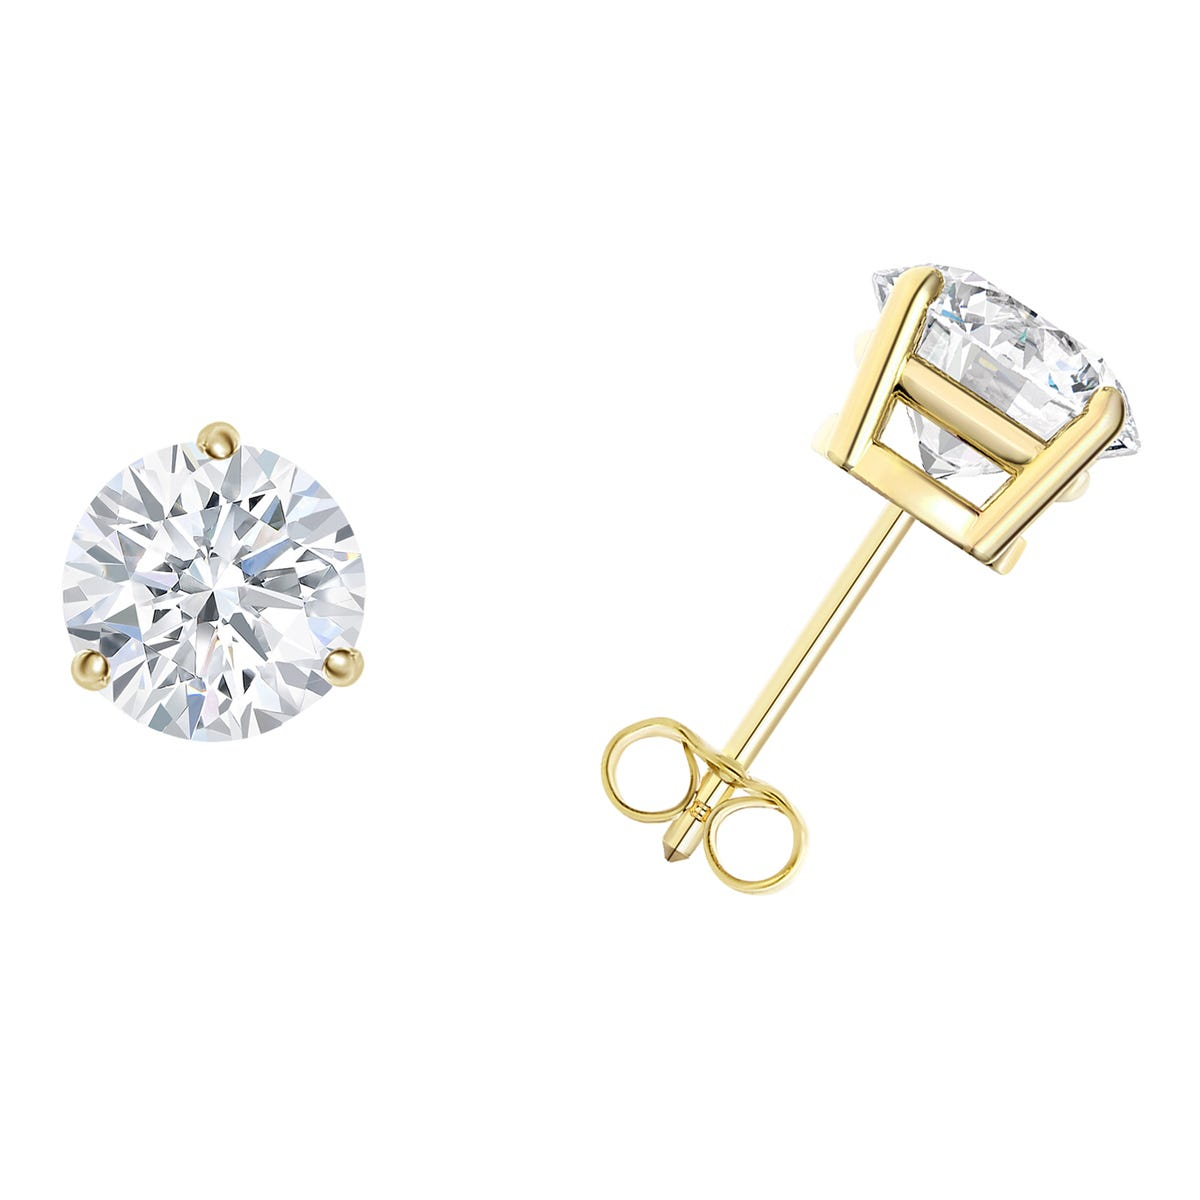 91d1c89a674e5 1-1/2 CTTW Round Diamond Solitaire Stud Earrings in 14K Yellow Gold 3-Prong  IGI Certified I2